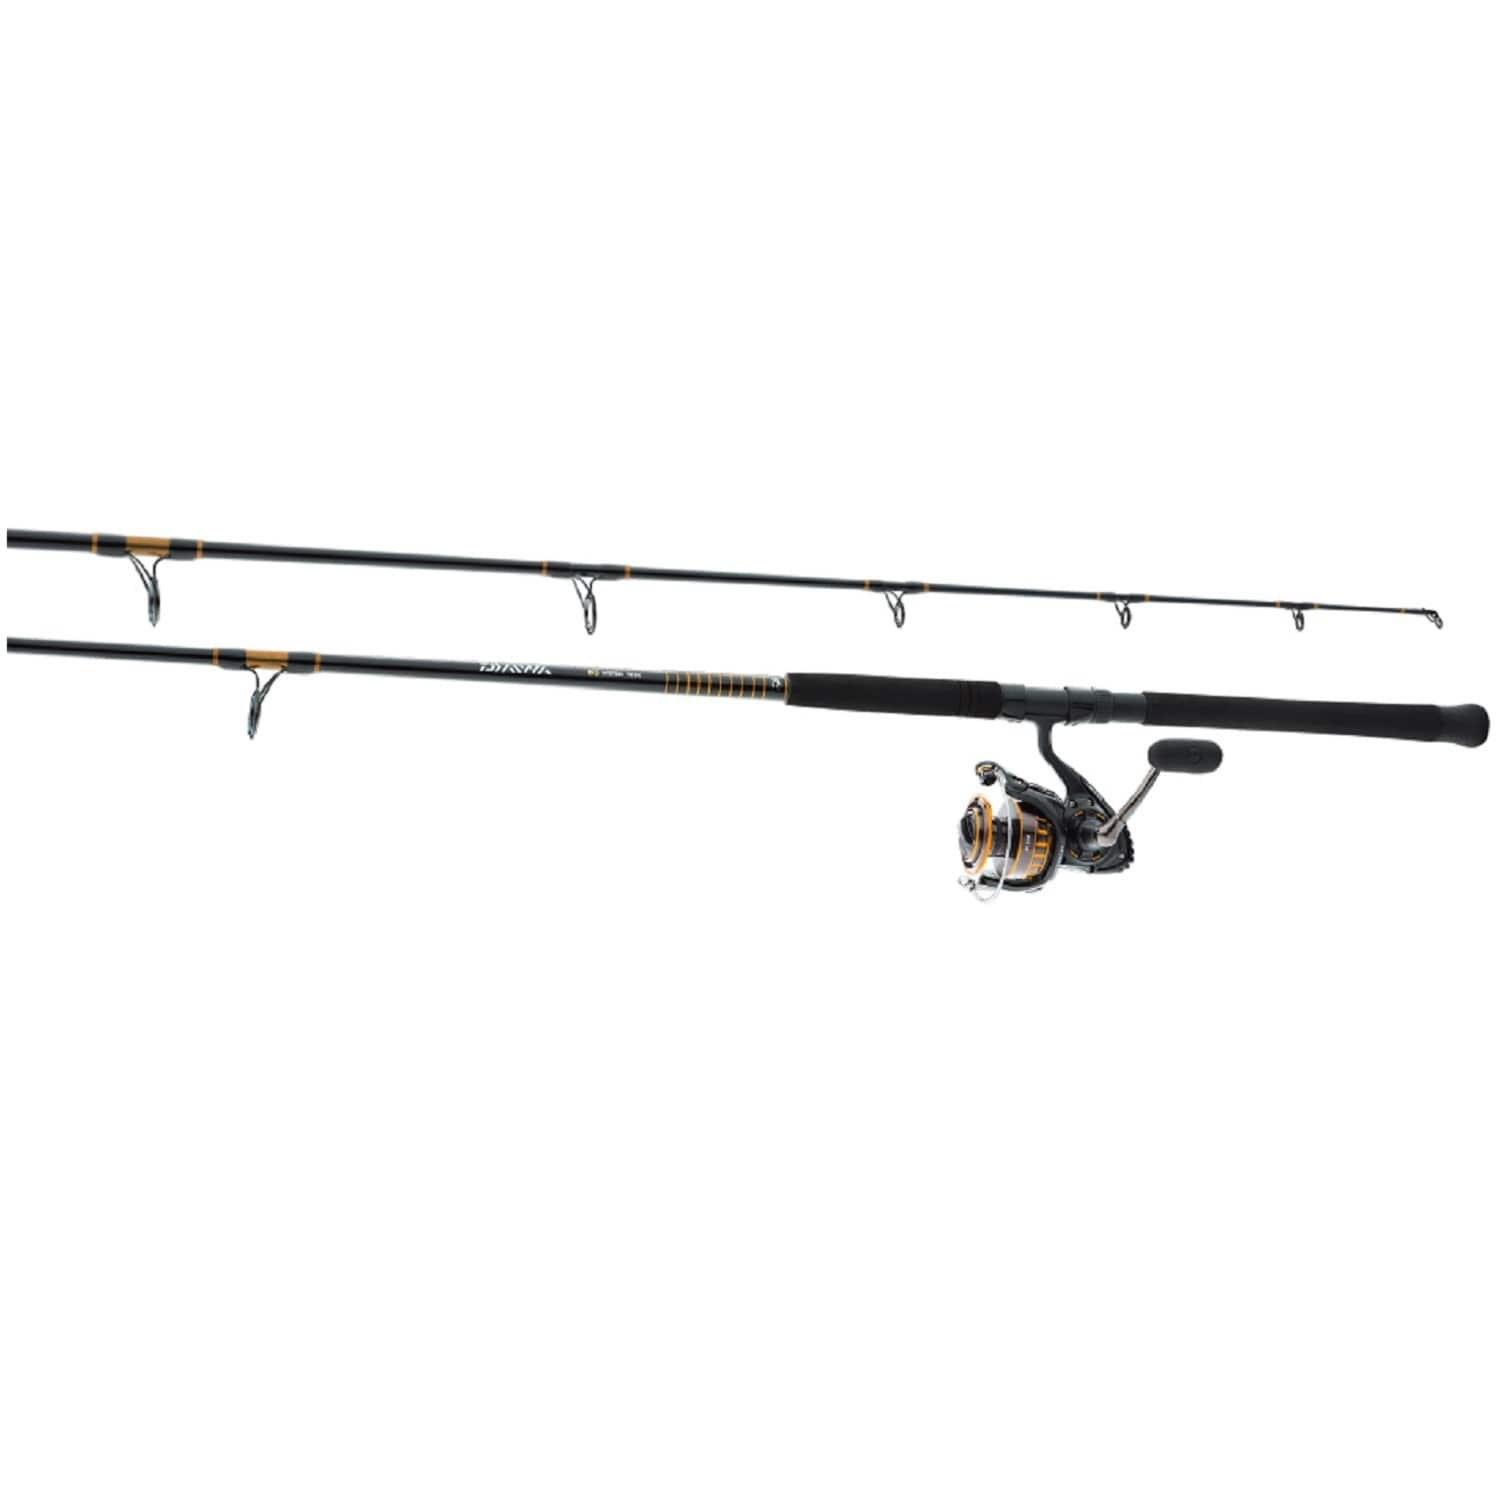 Shop Daiwa Bg Aluminum 10 Foot Surf Pre Mounted Saltwater Spinning Rod And Reel Combo Overstock 13287160